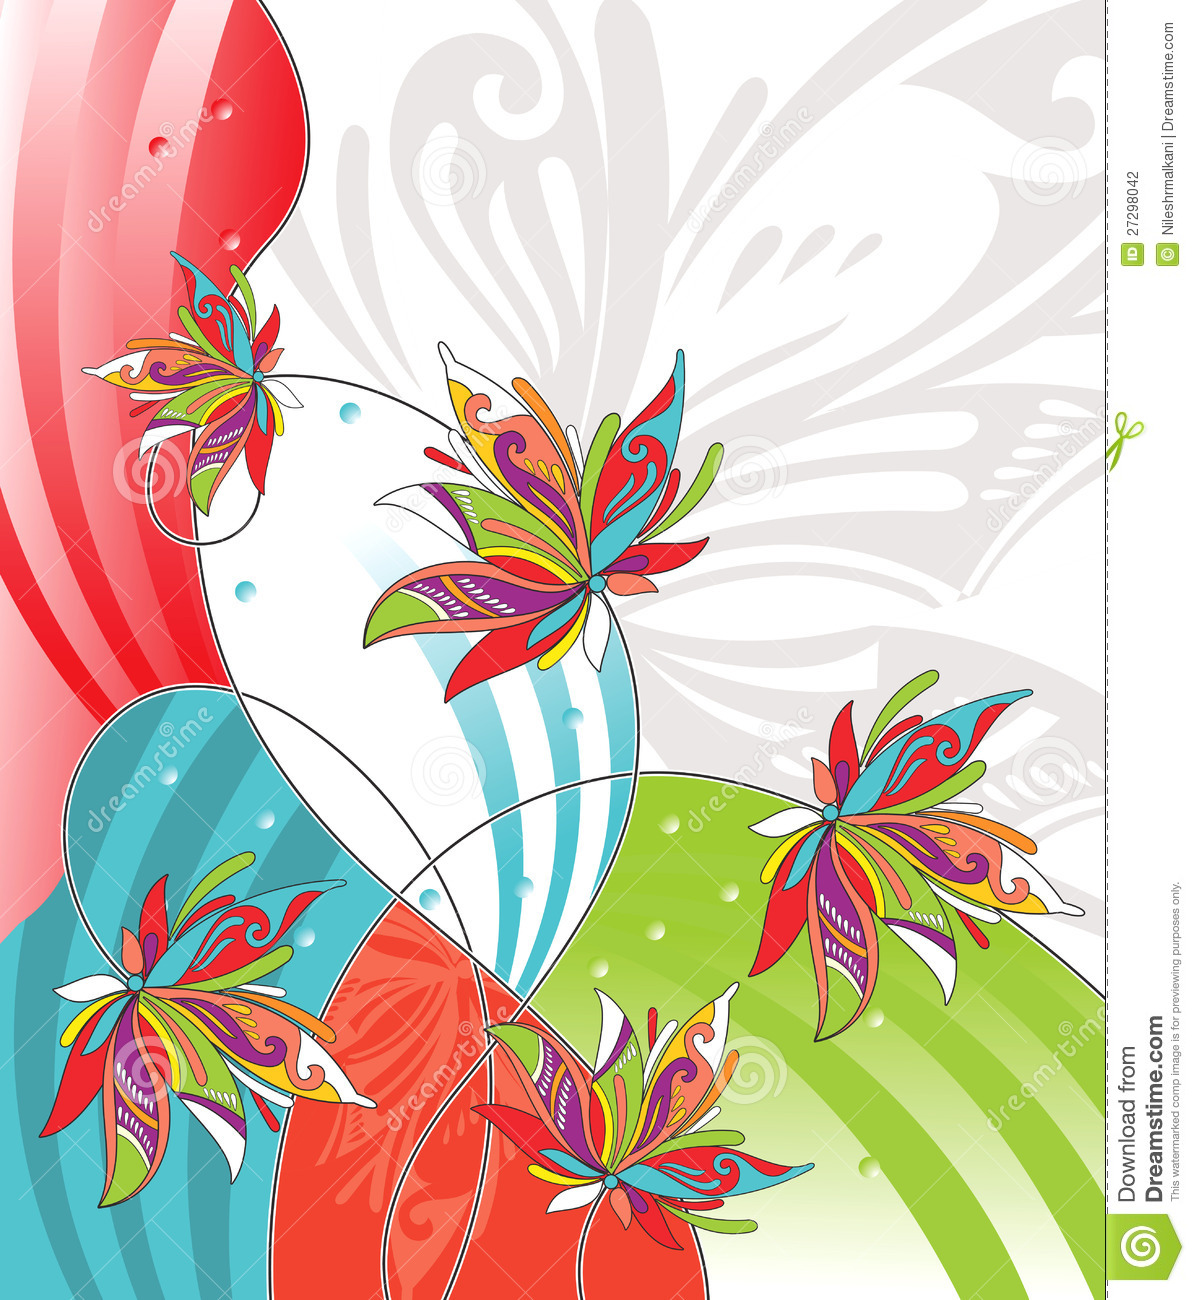 Vector flower design for greeting card stock vector illustration vector flower design for greeting card kristyandbryce Image collections